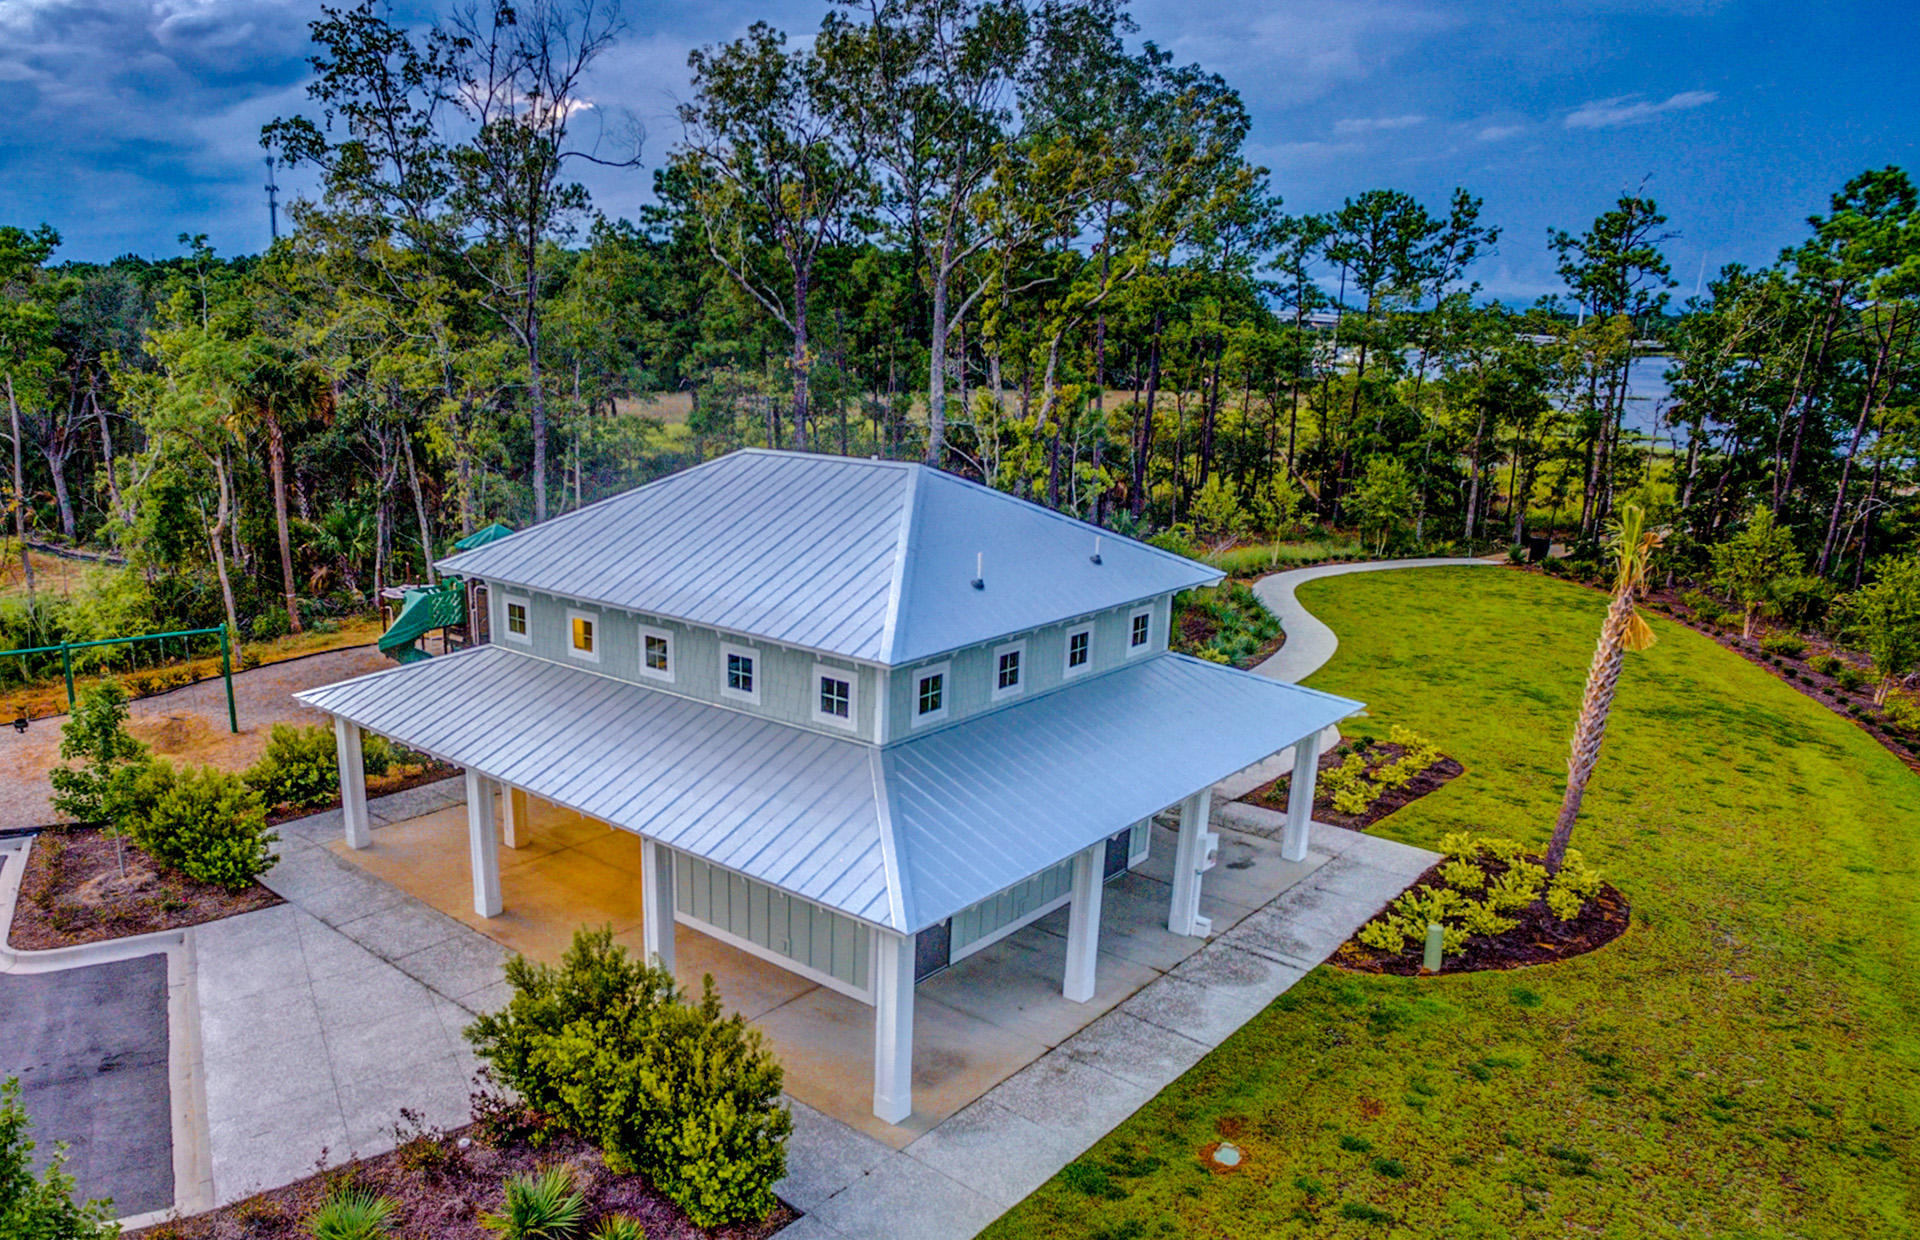 Dunes West Homes For Sale - 2938 Clearwater, Mount Pleasant, SC - 3